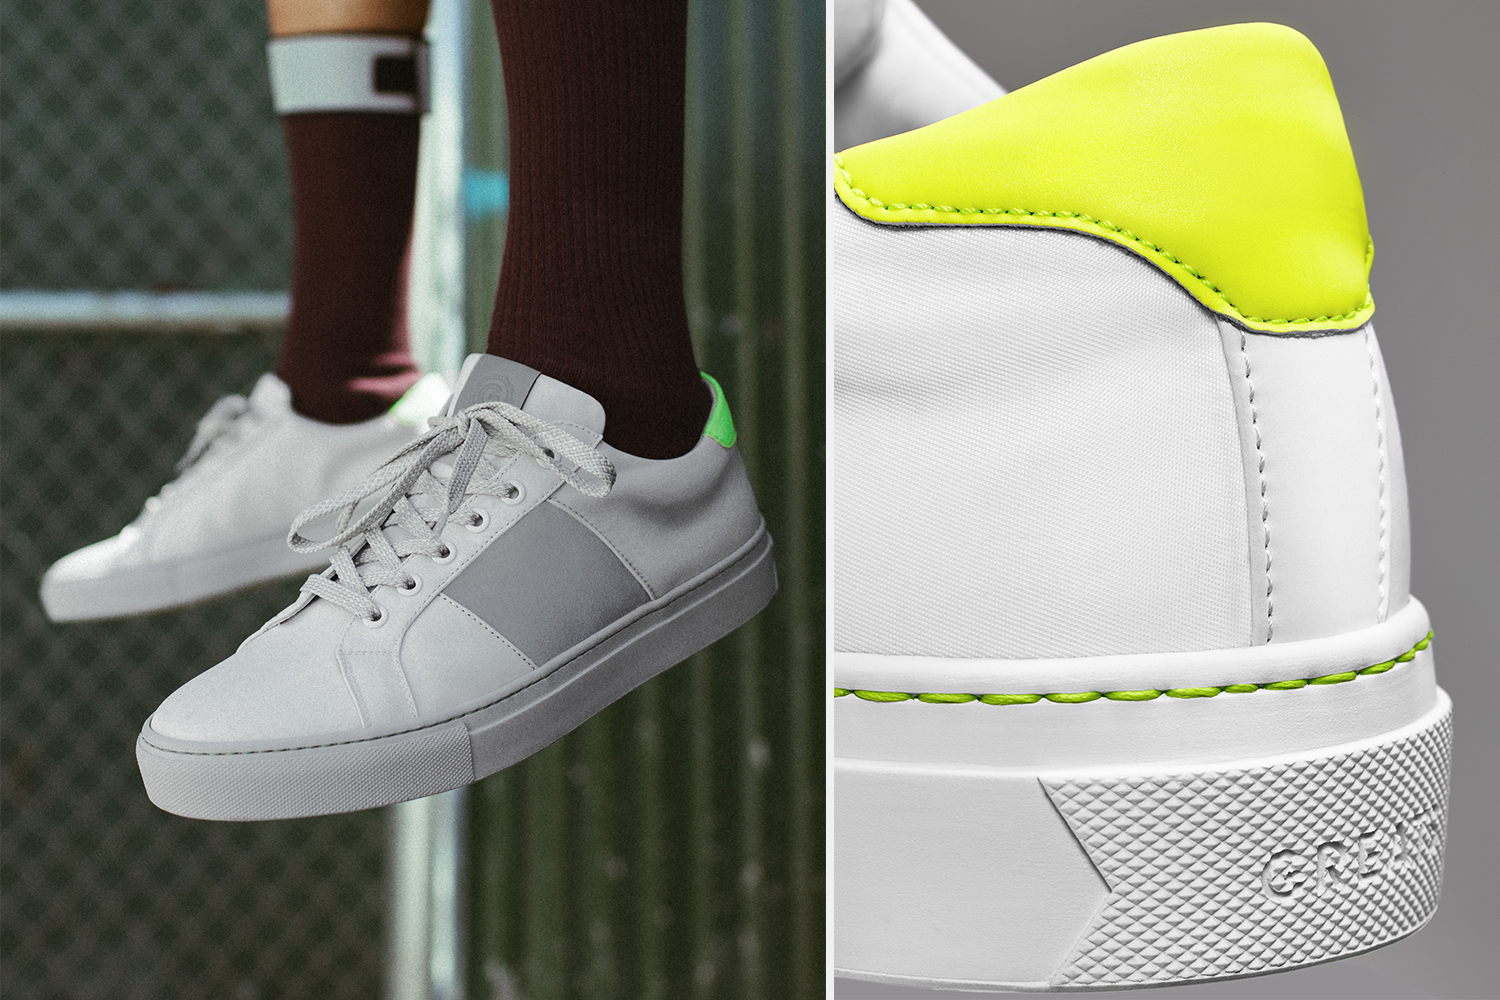 Greats Royale Safety Sneaker Collection